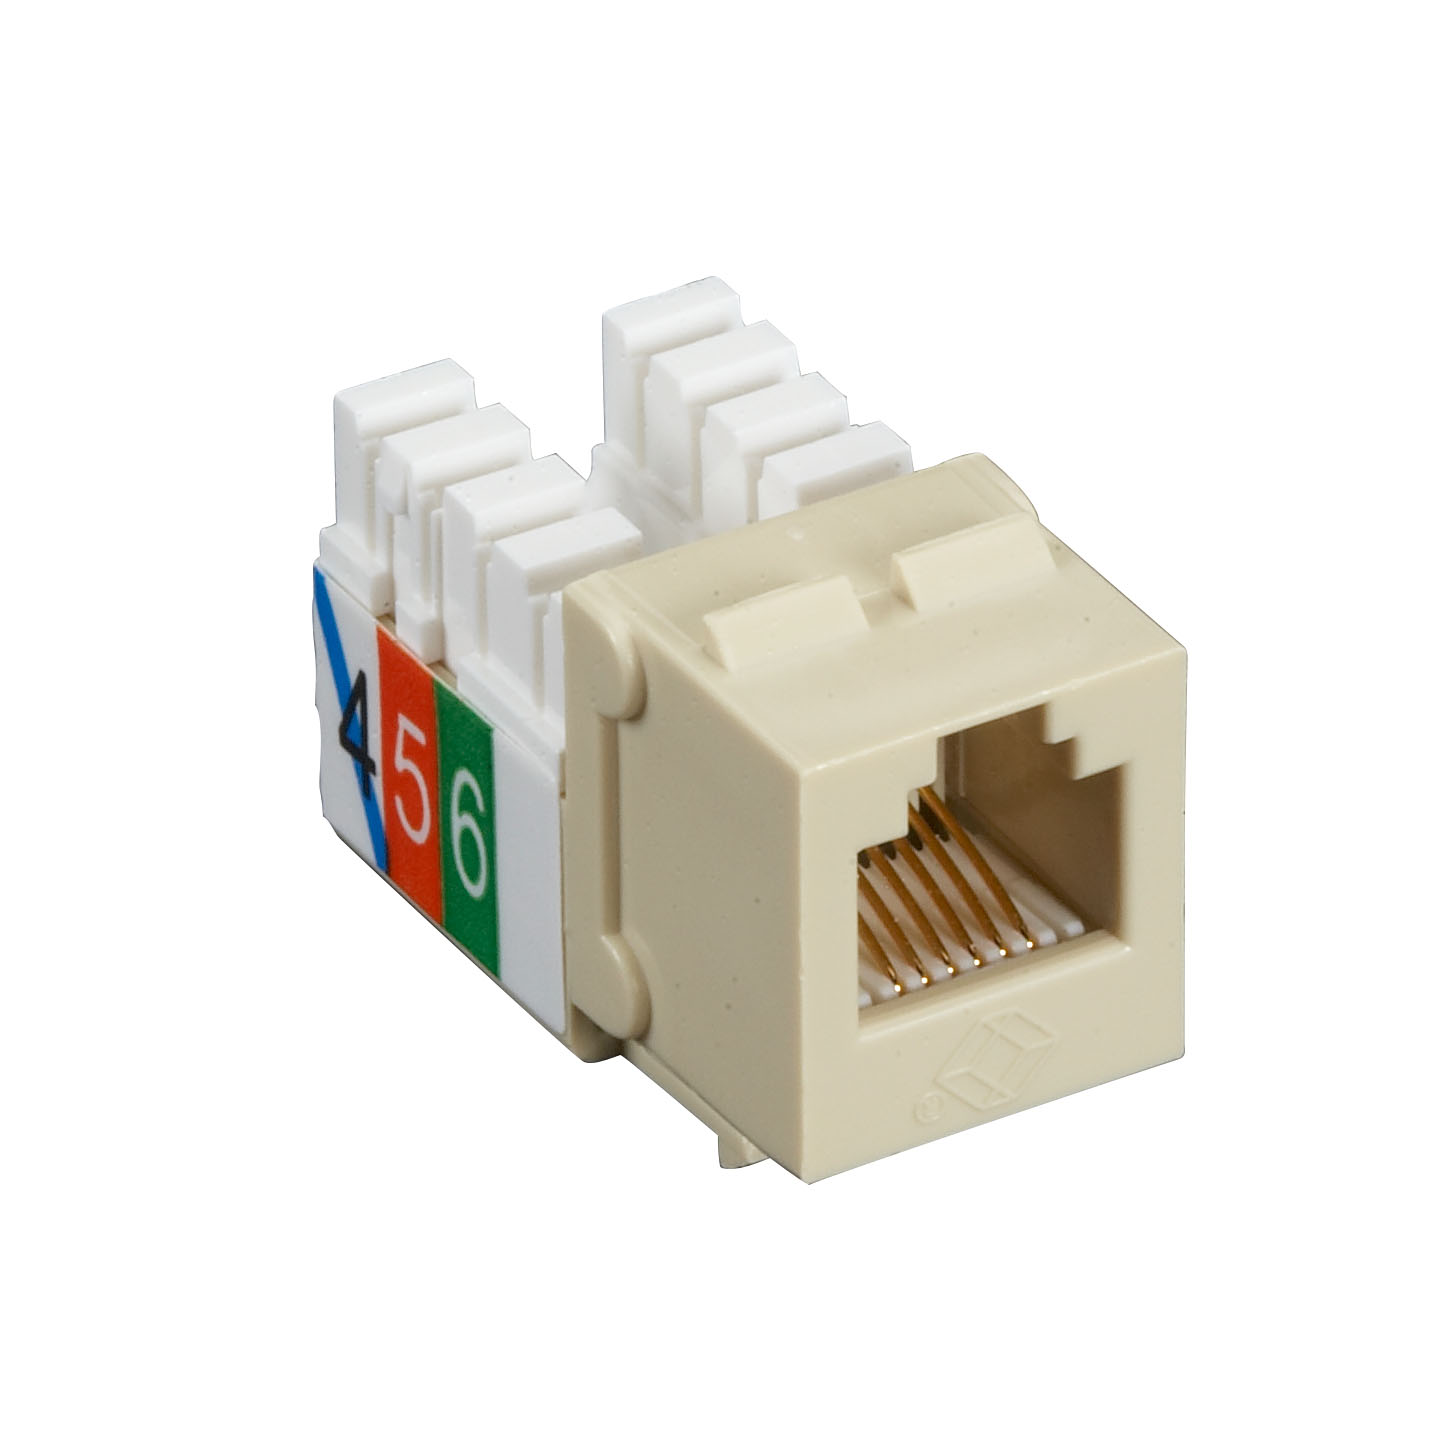 USOC RJ-11 Jack - Ivory, Single-Pack